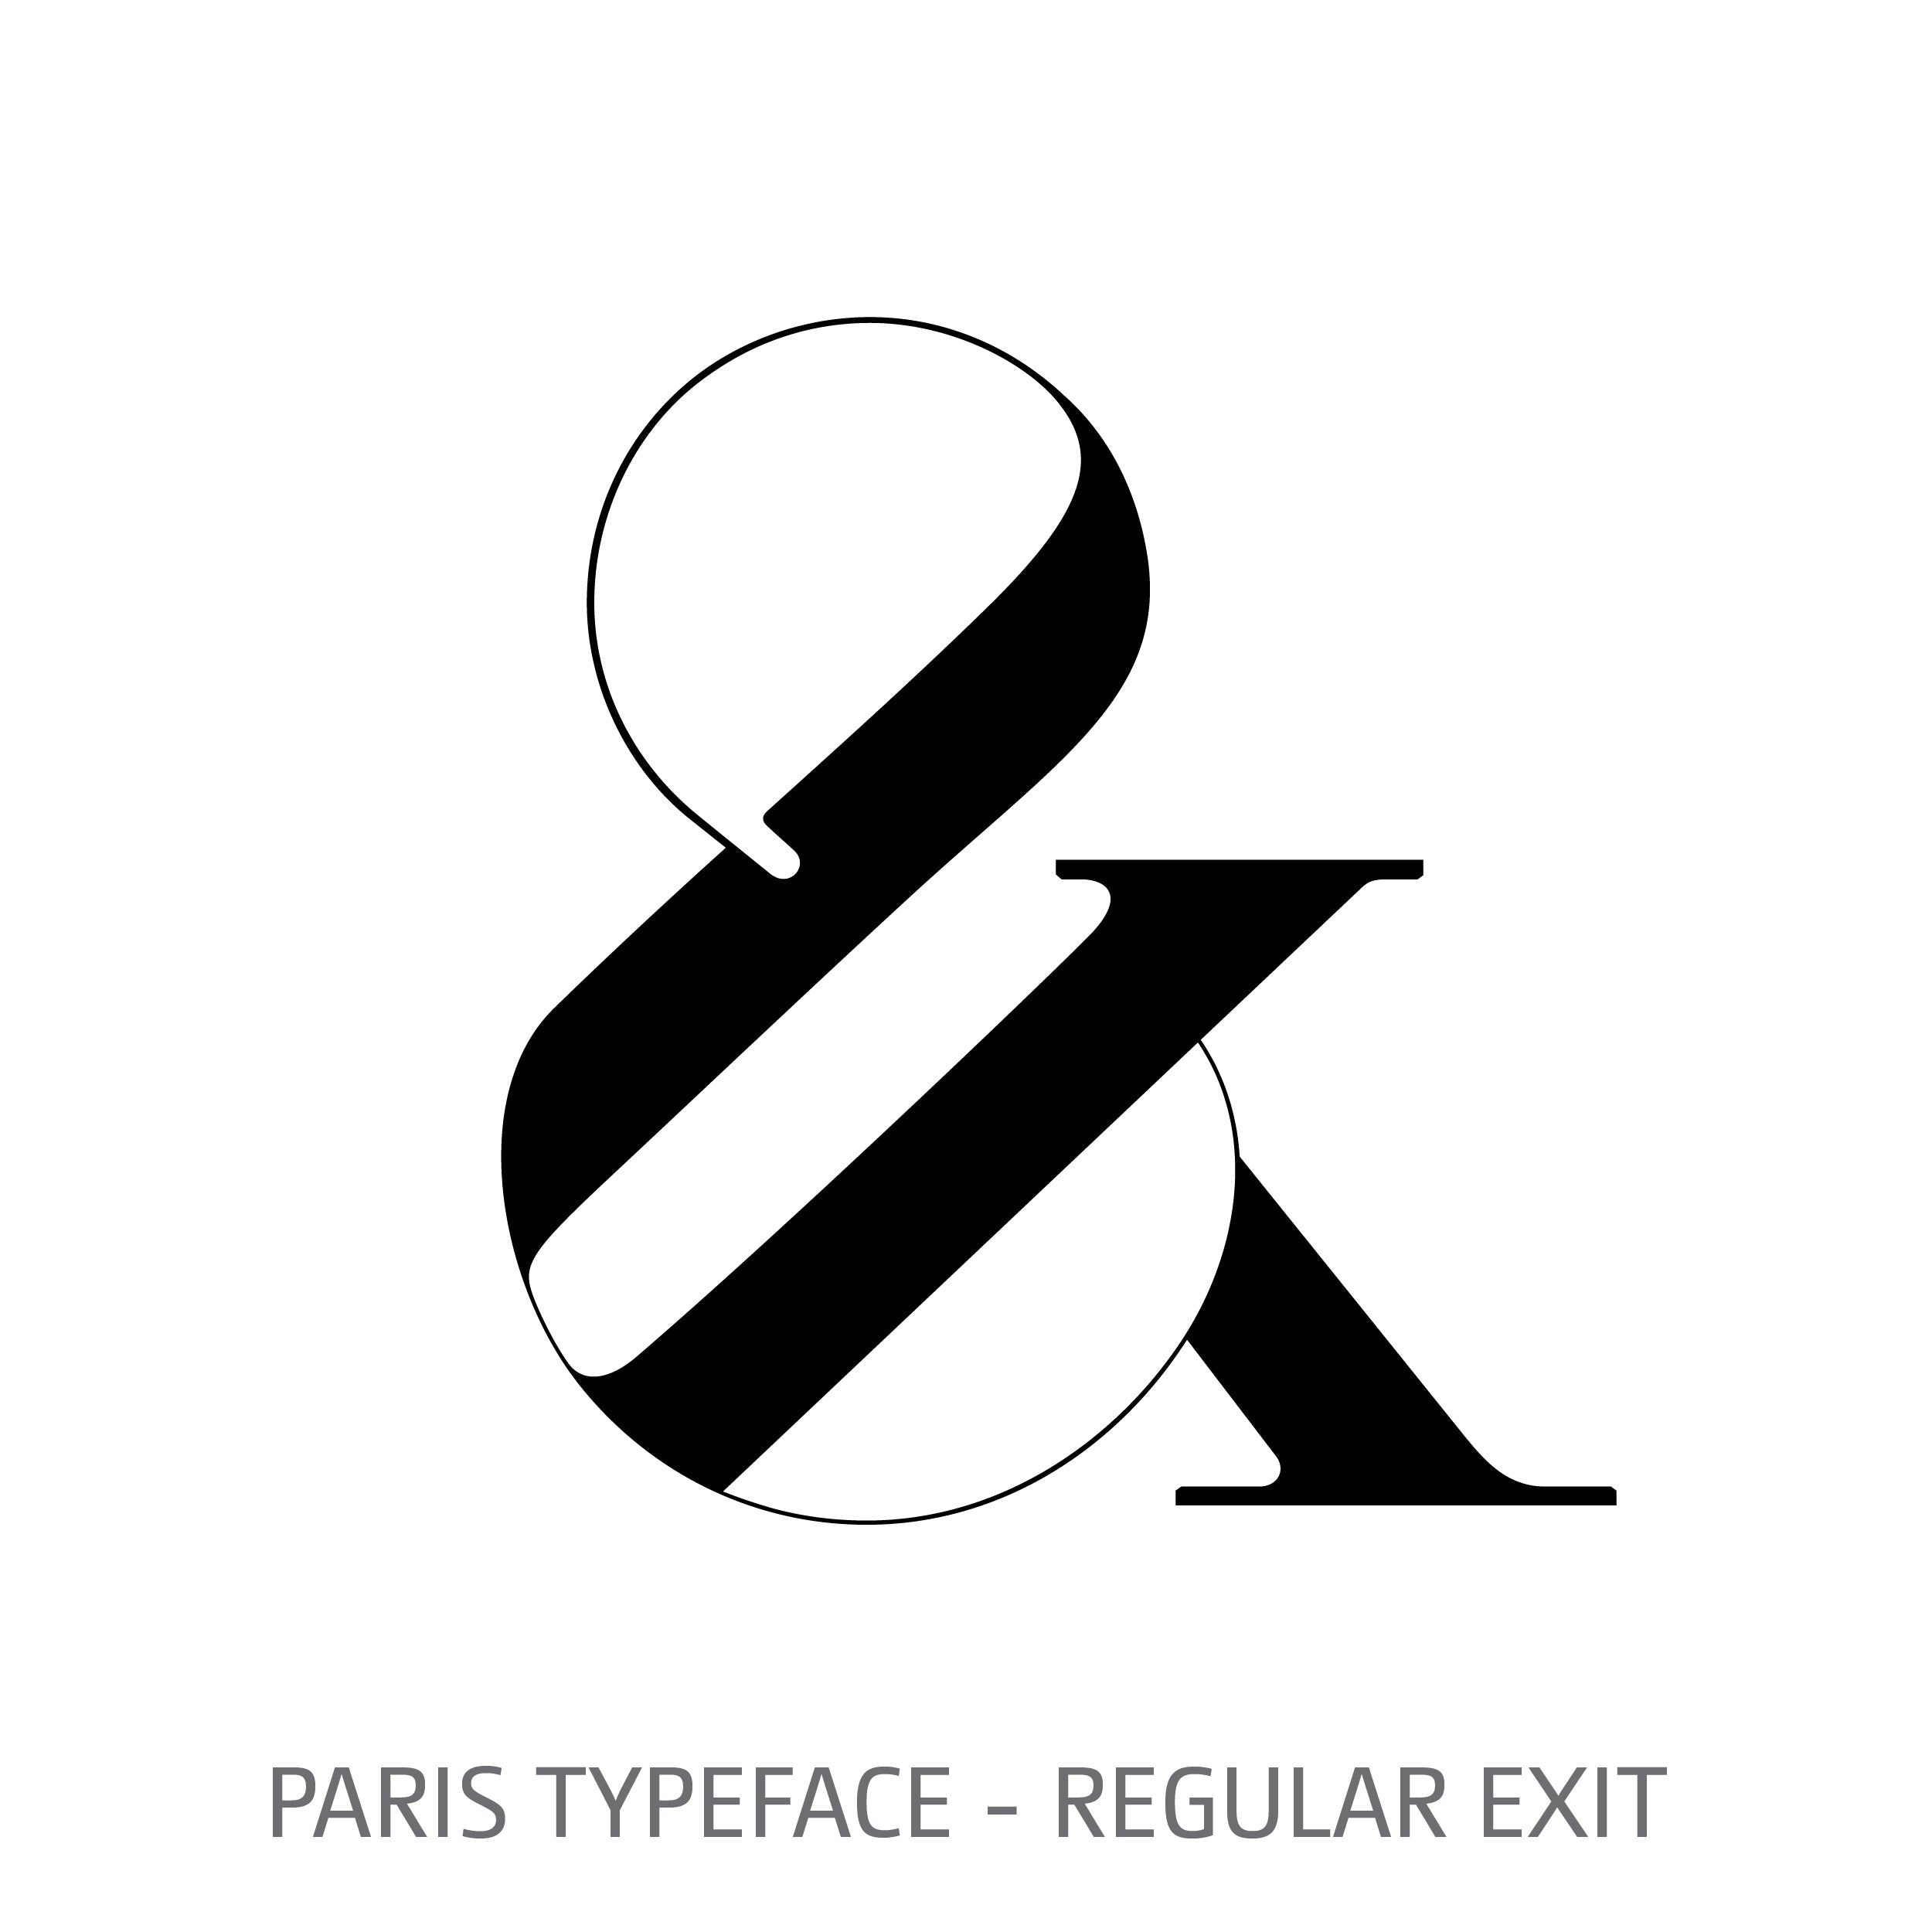 Paris Typeface Regular Exit Style